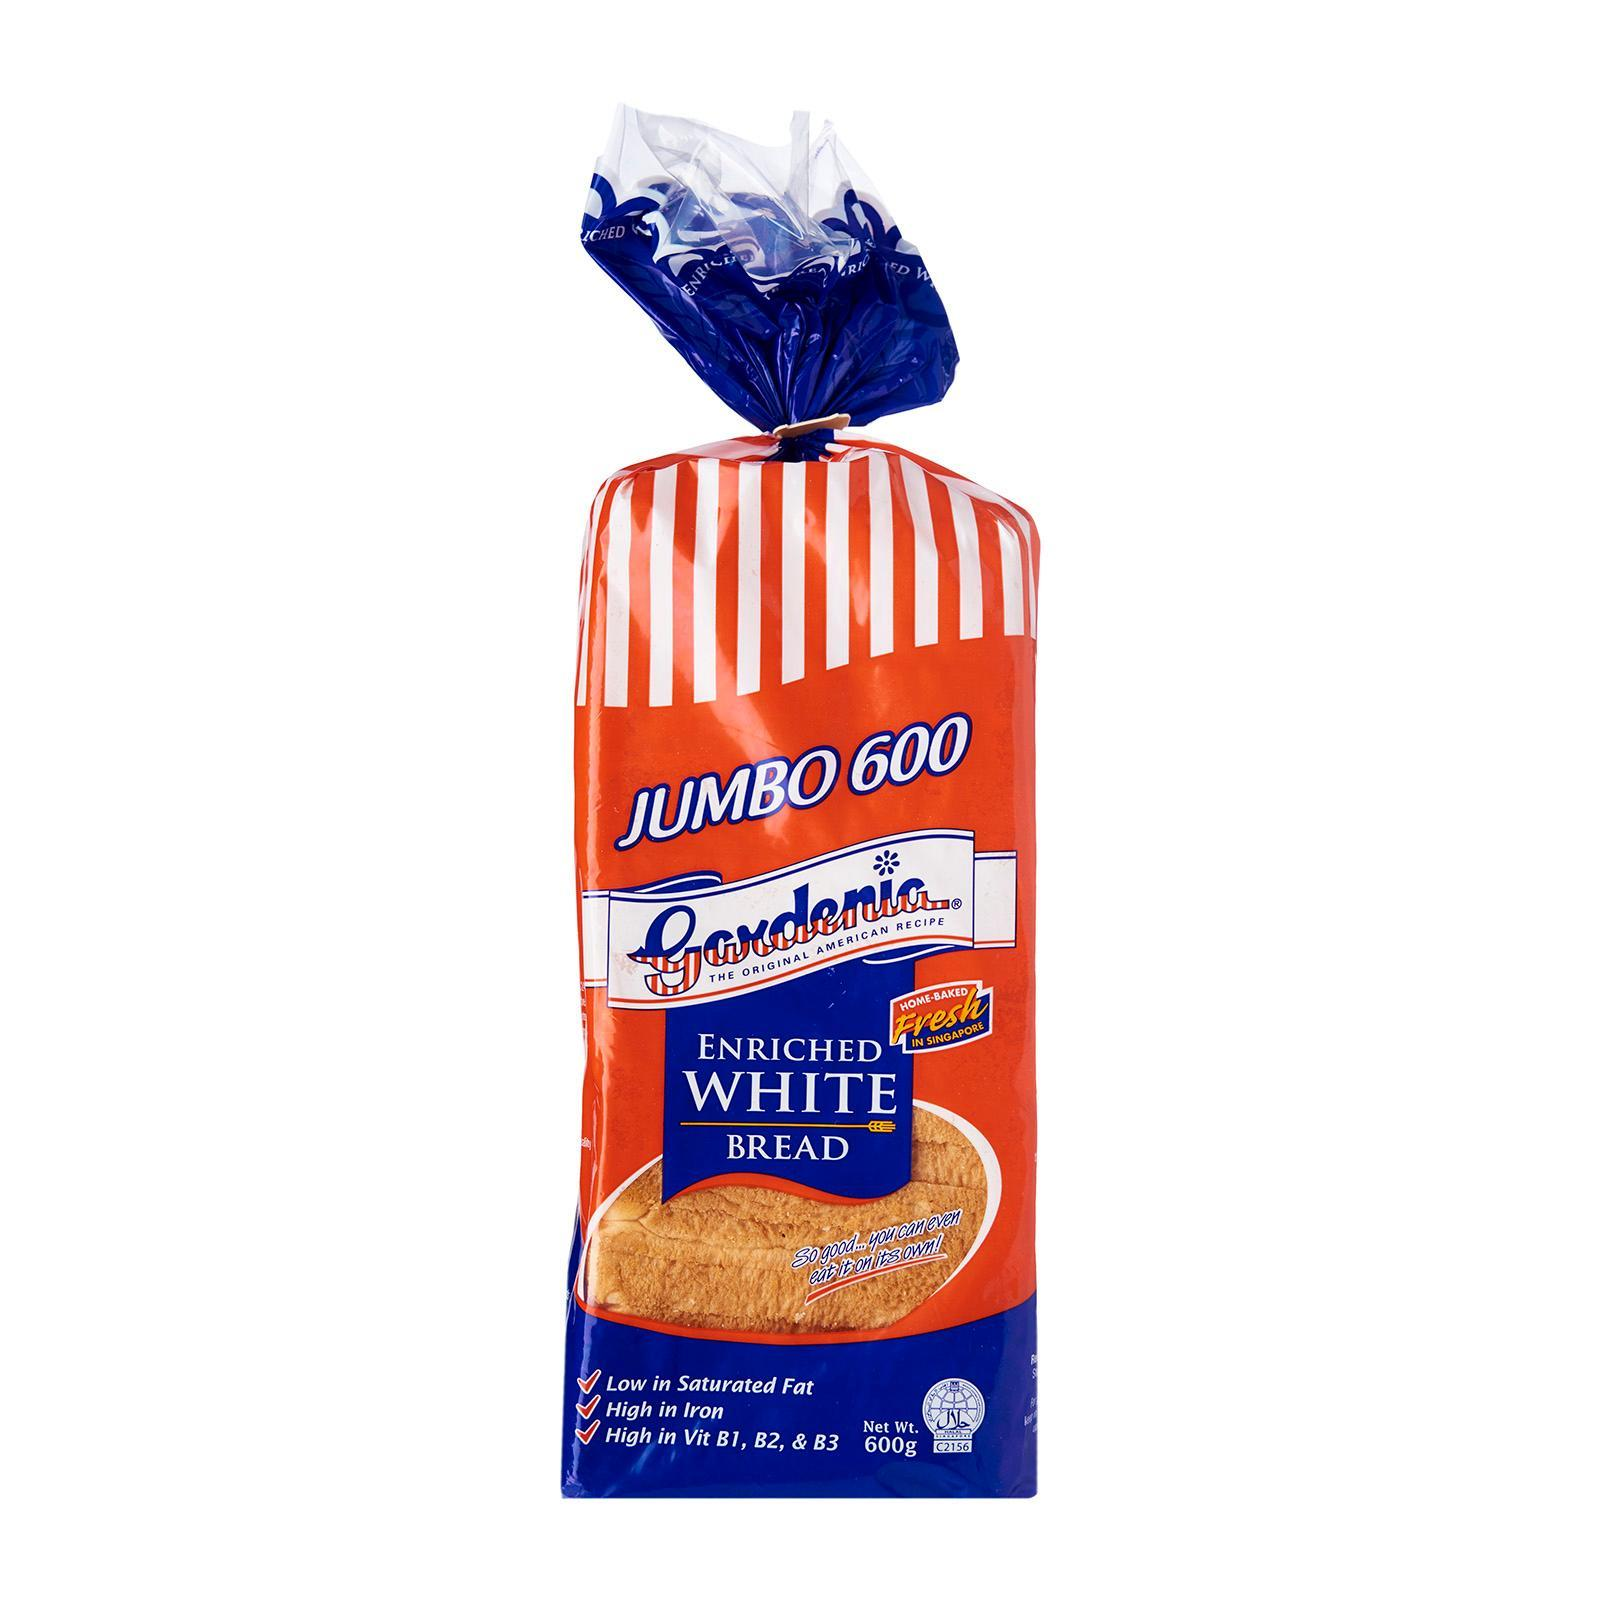 Gardenia Jumbo 600 Enriched White Bread By Redmart.